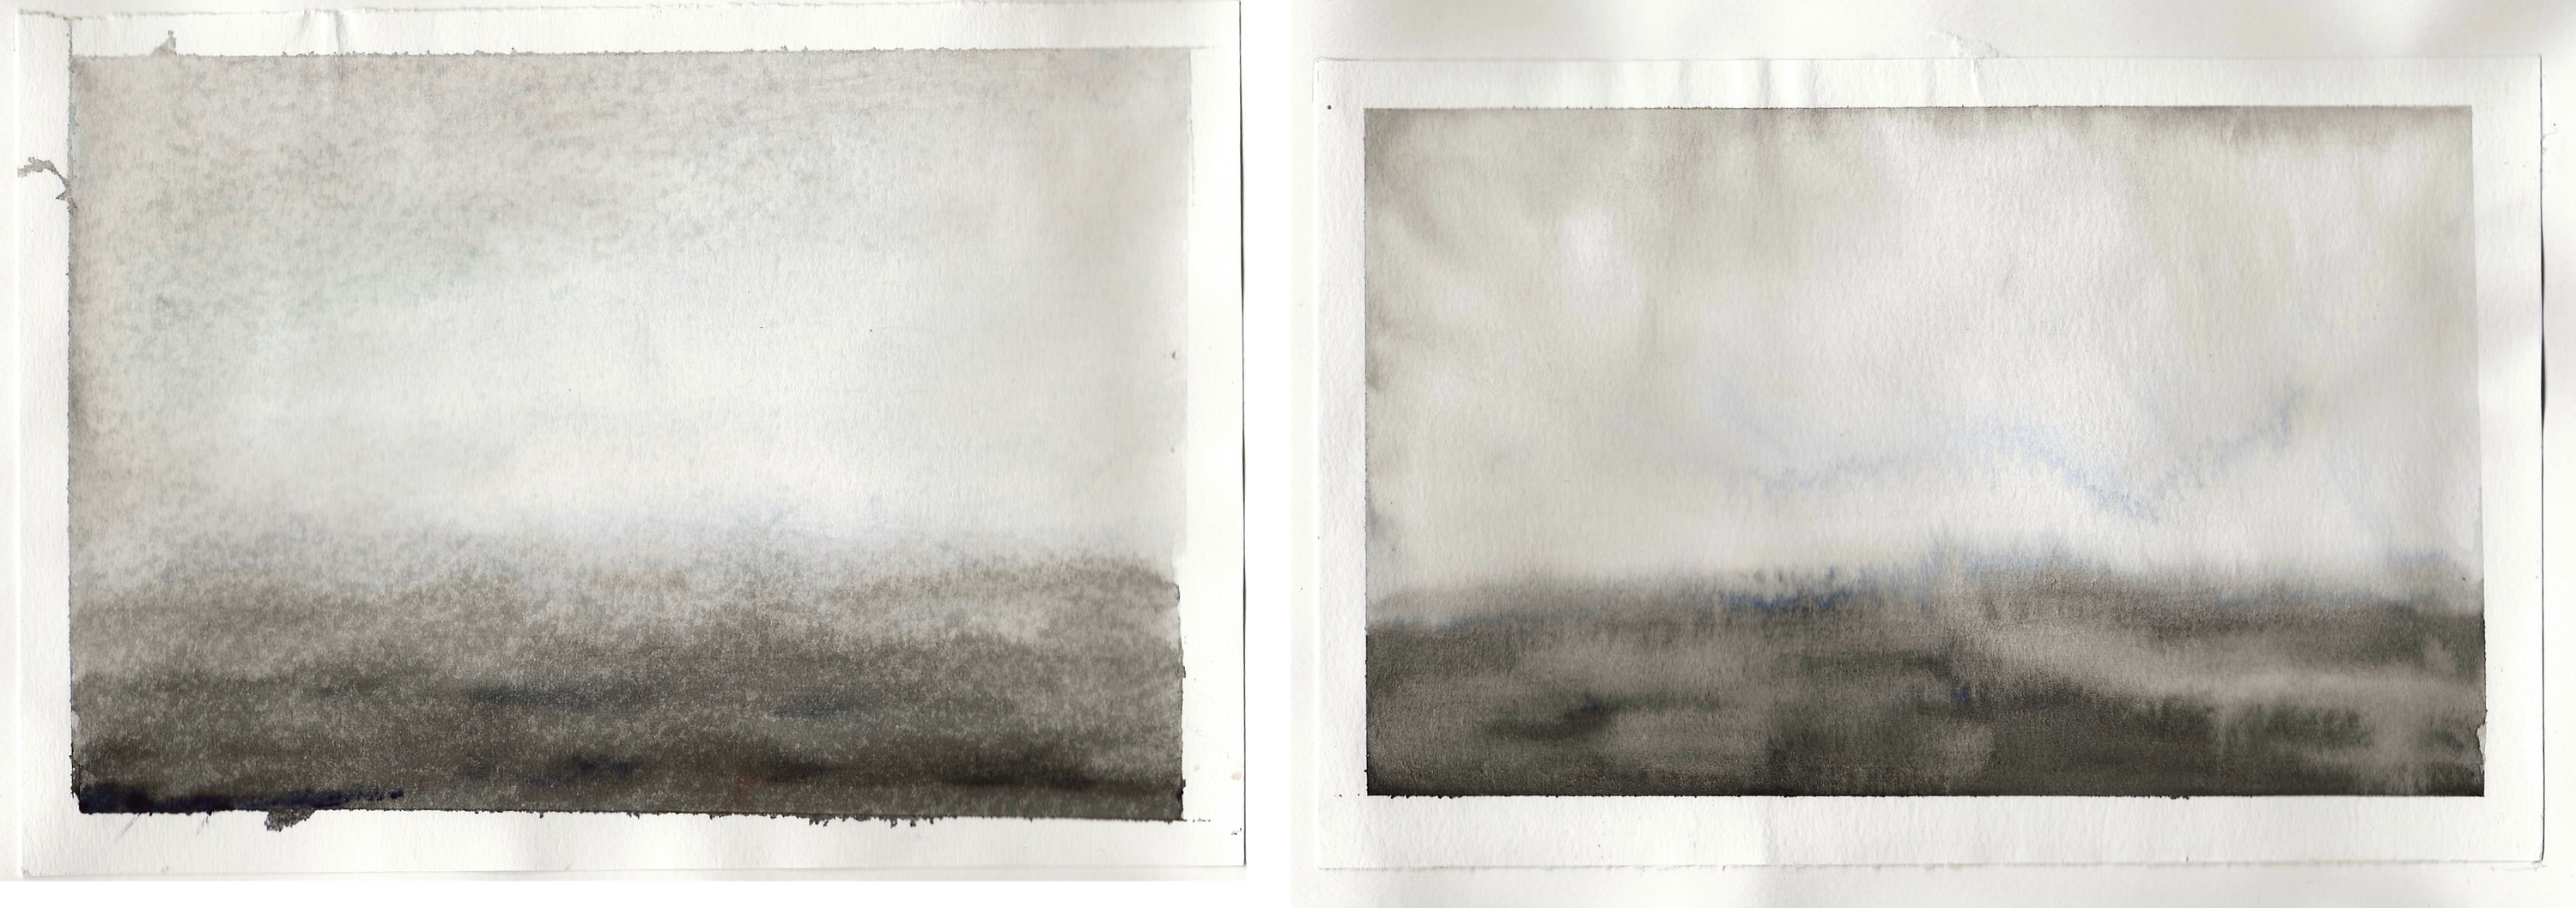 diptych watercolour studies - sequence 2 - #1 #2 - watercolour - 210 x 148mm - 200gsm 120lb